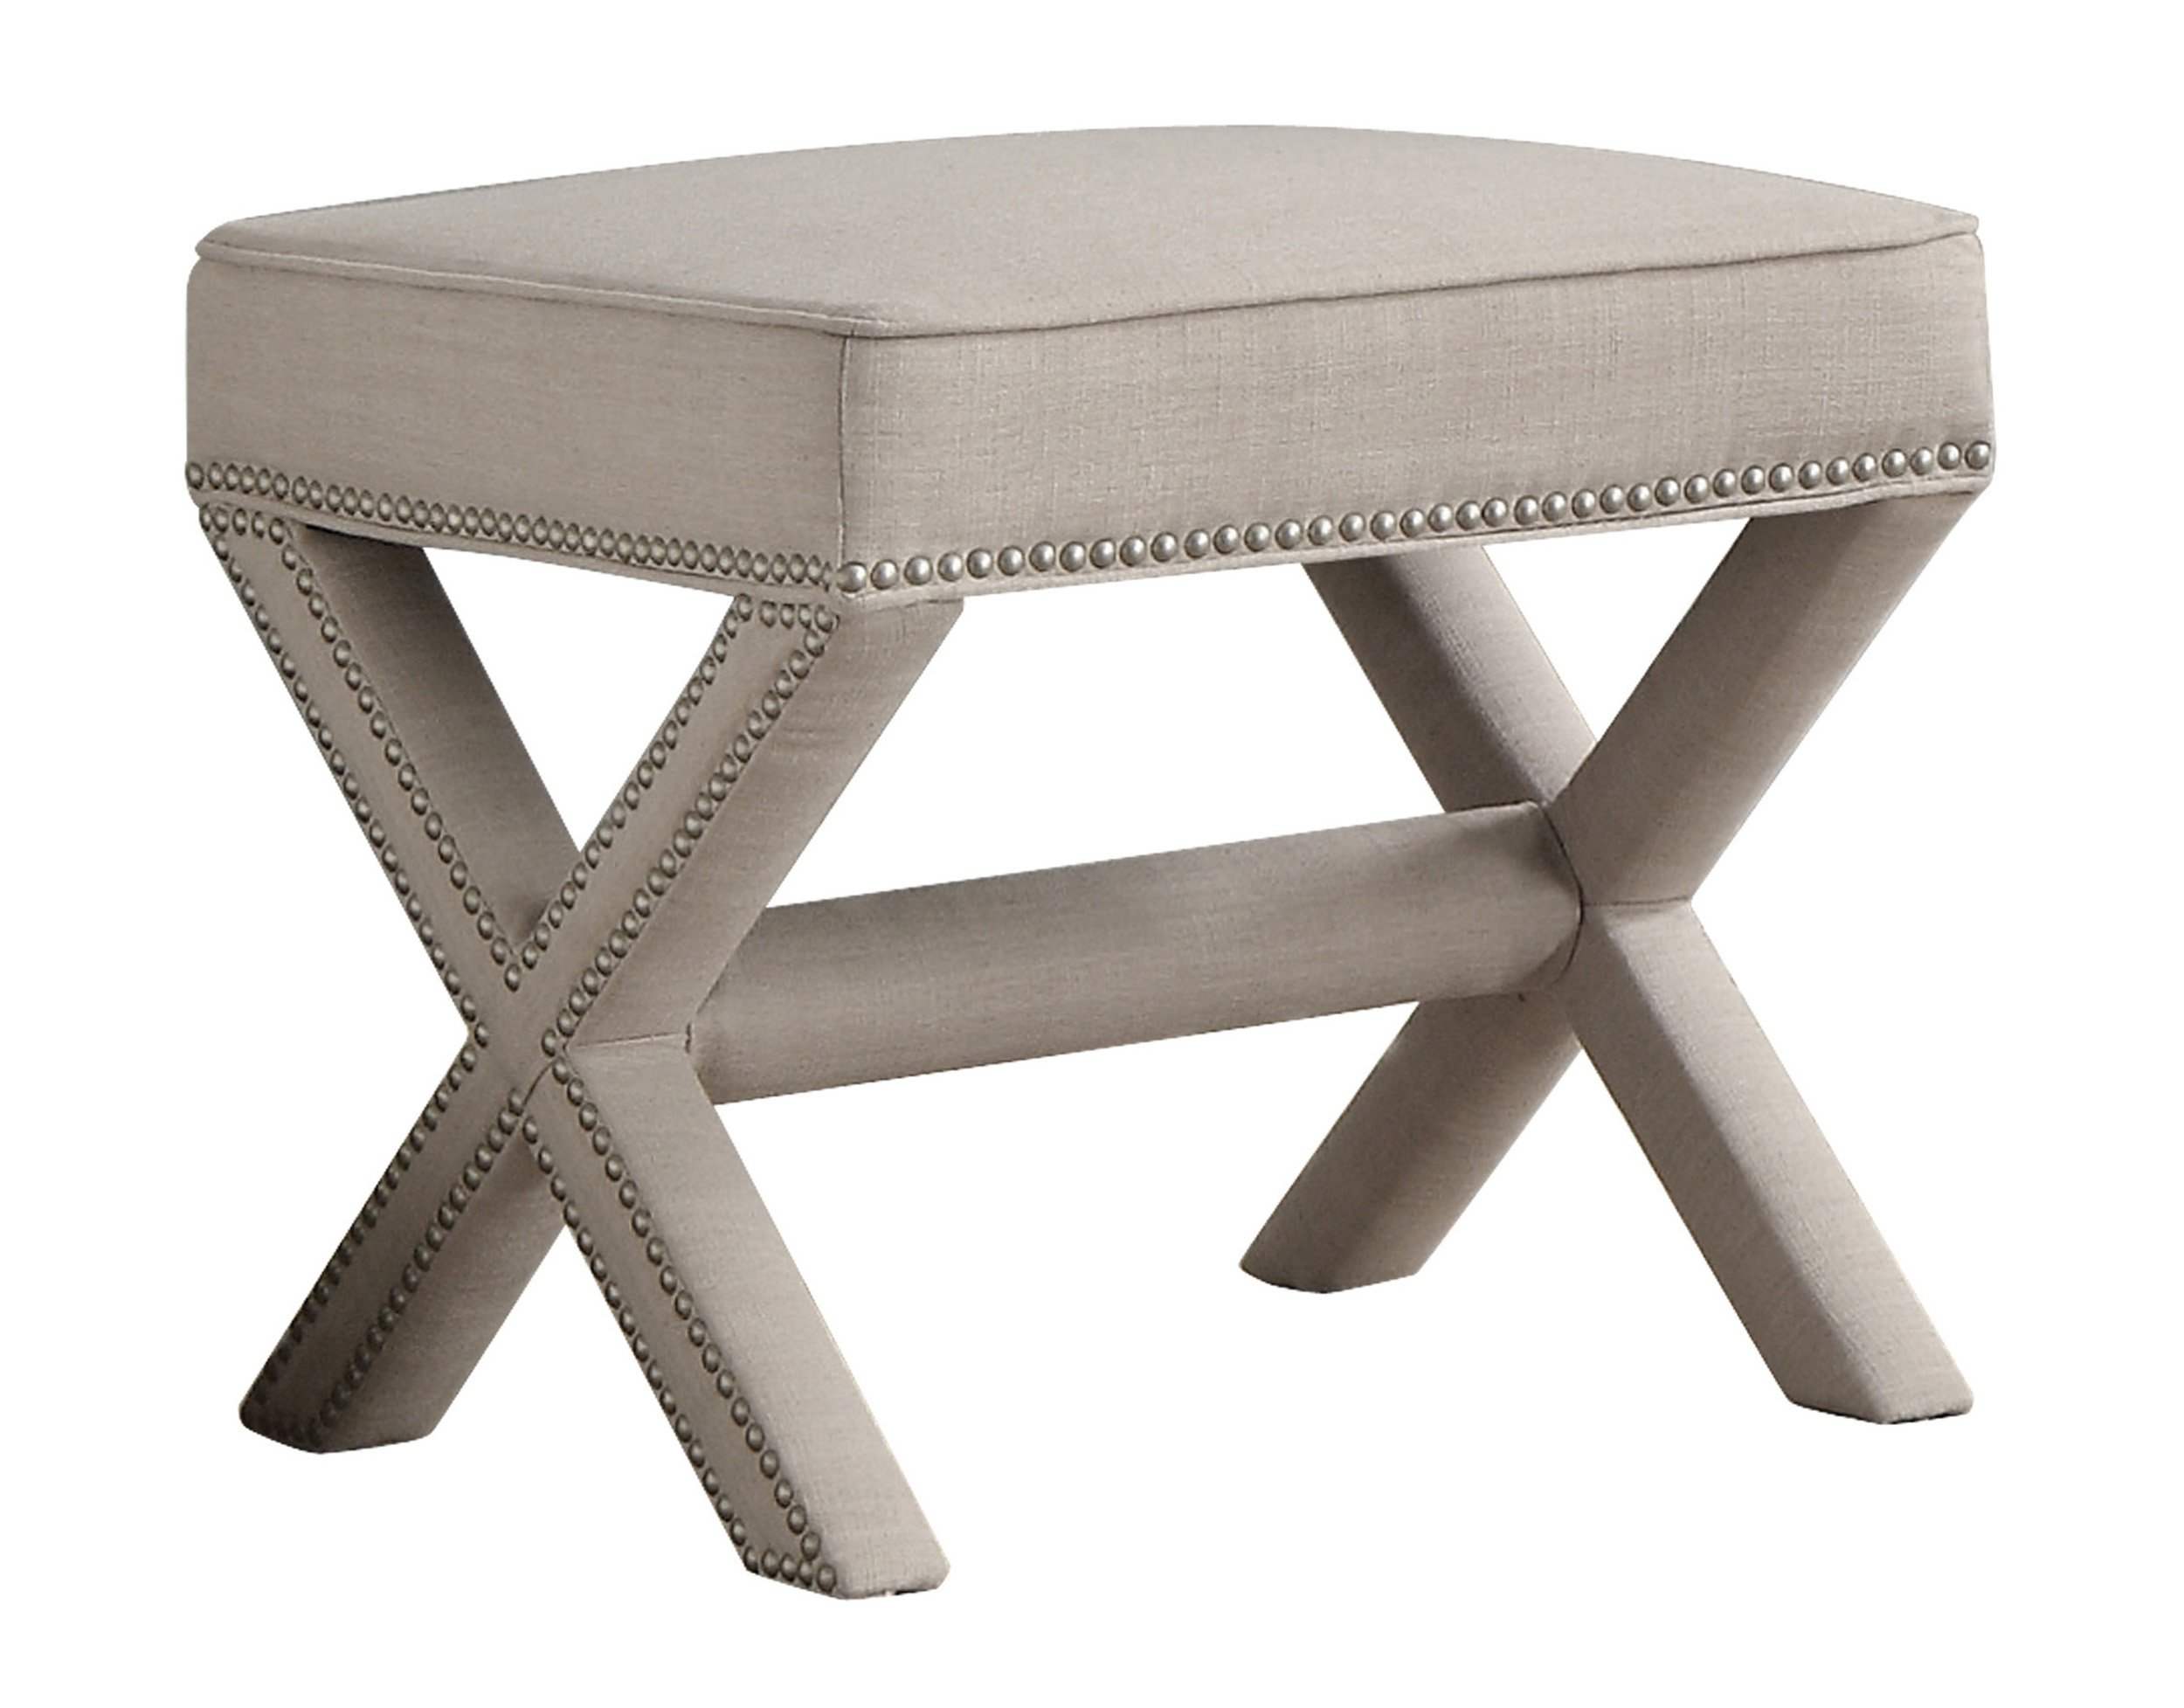 Homelegance Recife Fully Upholstered Accent Ottoman, Beige